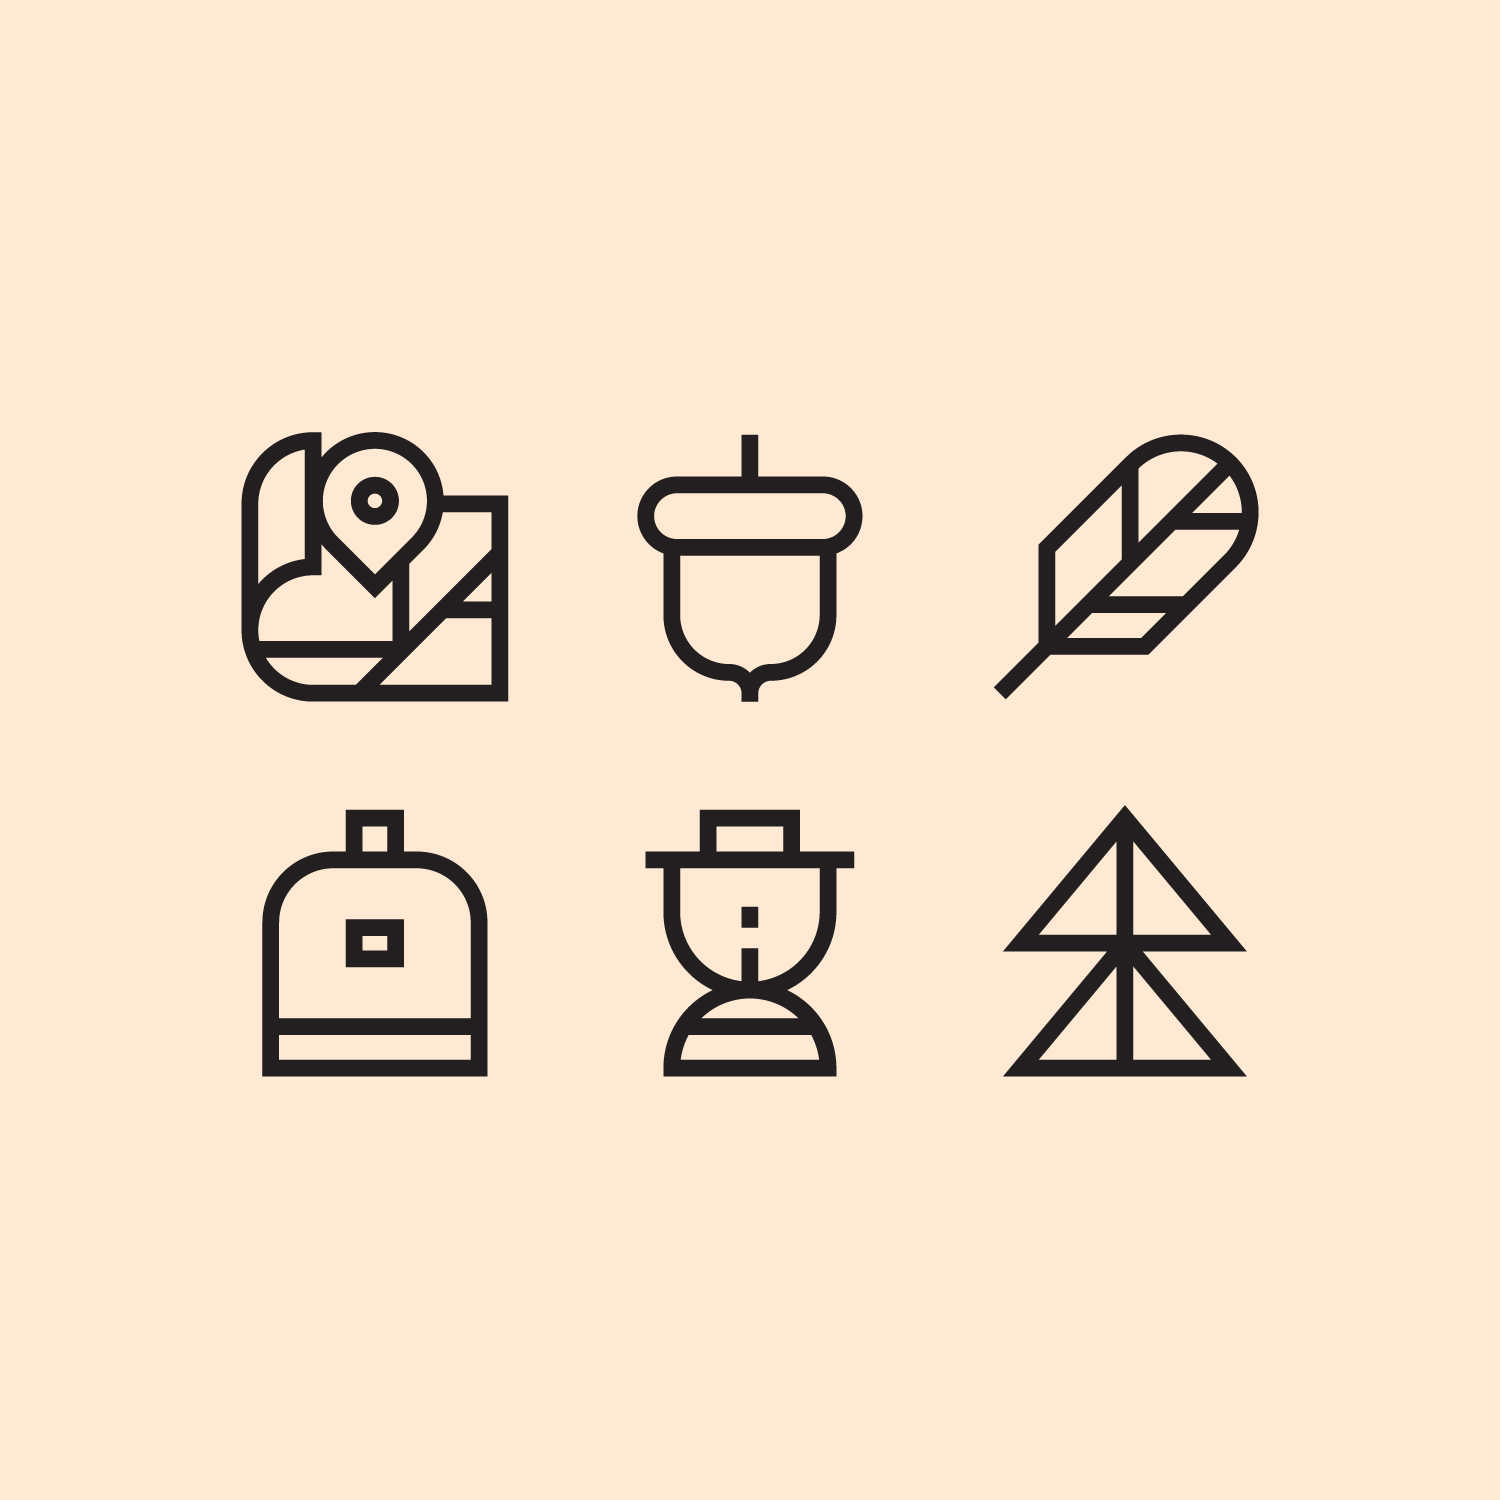 Education First icon system  A brand new icon system for EF, an international education company. We created around 200+ icons in total, all based on the same grid to ensure consistency across the system